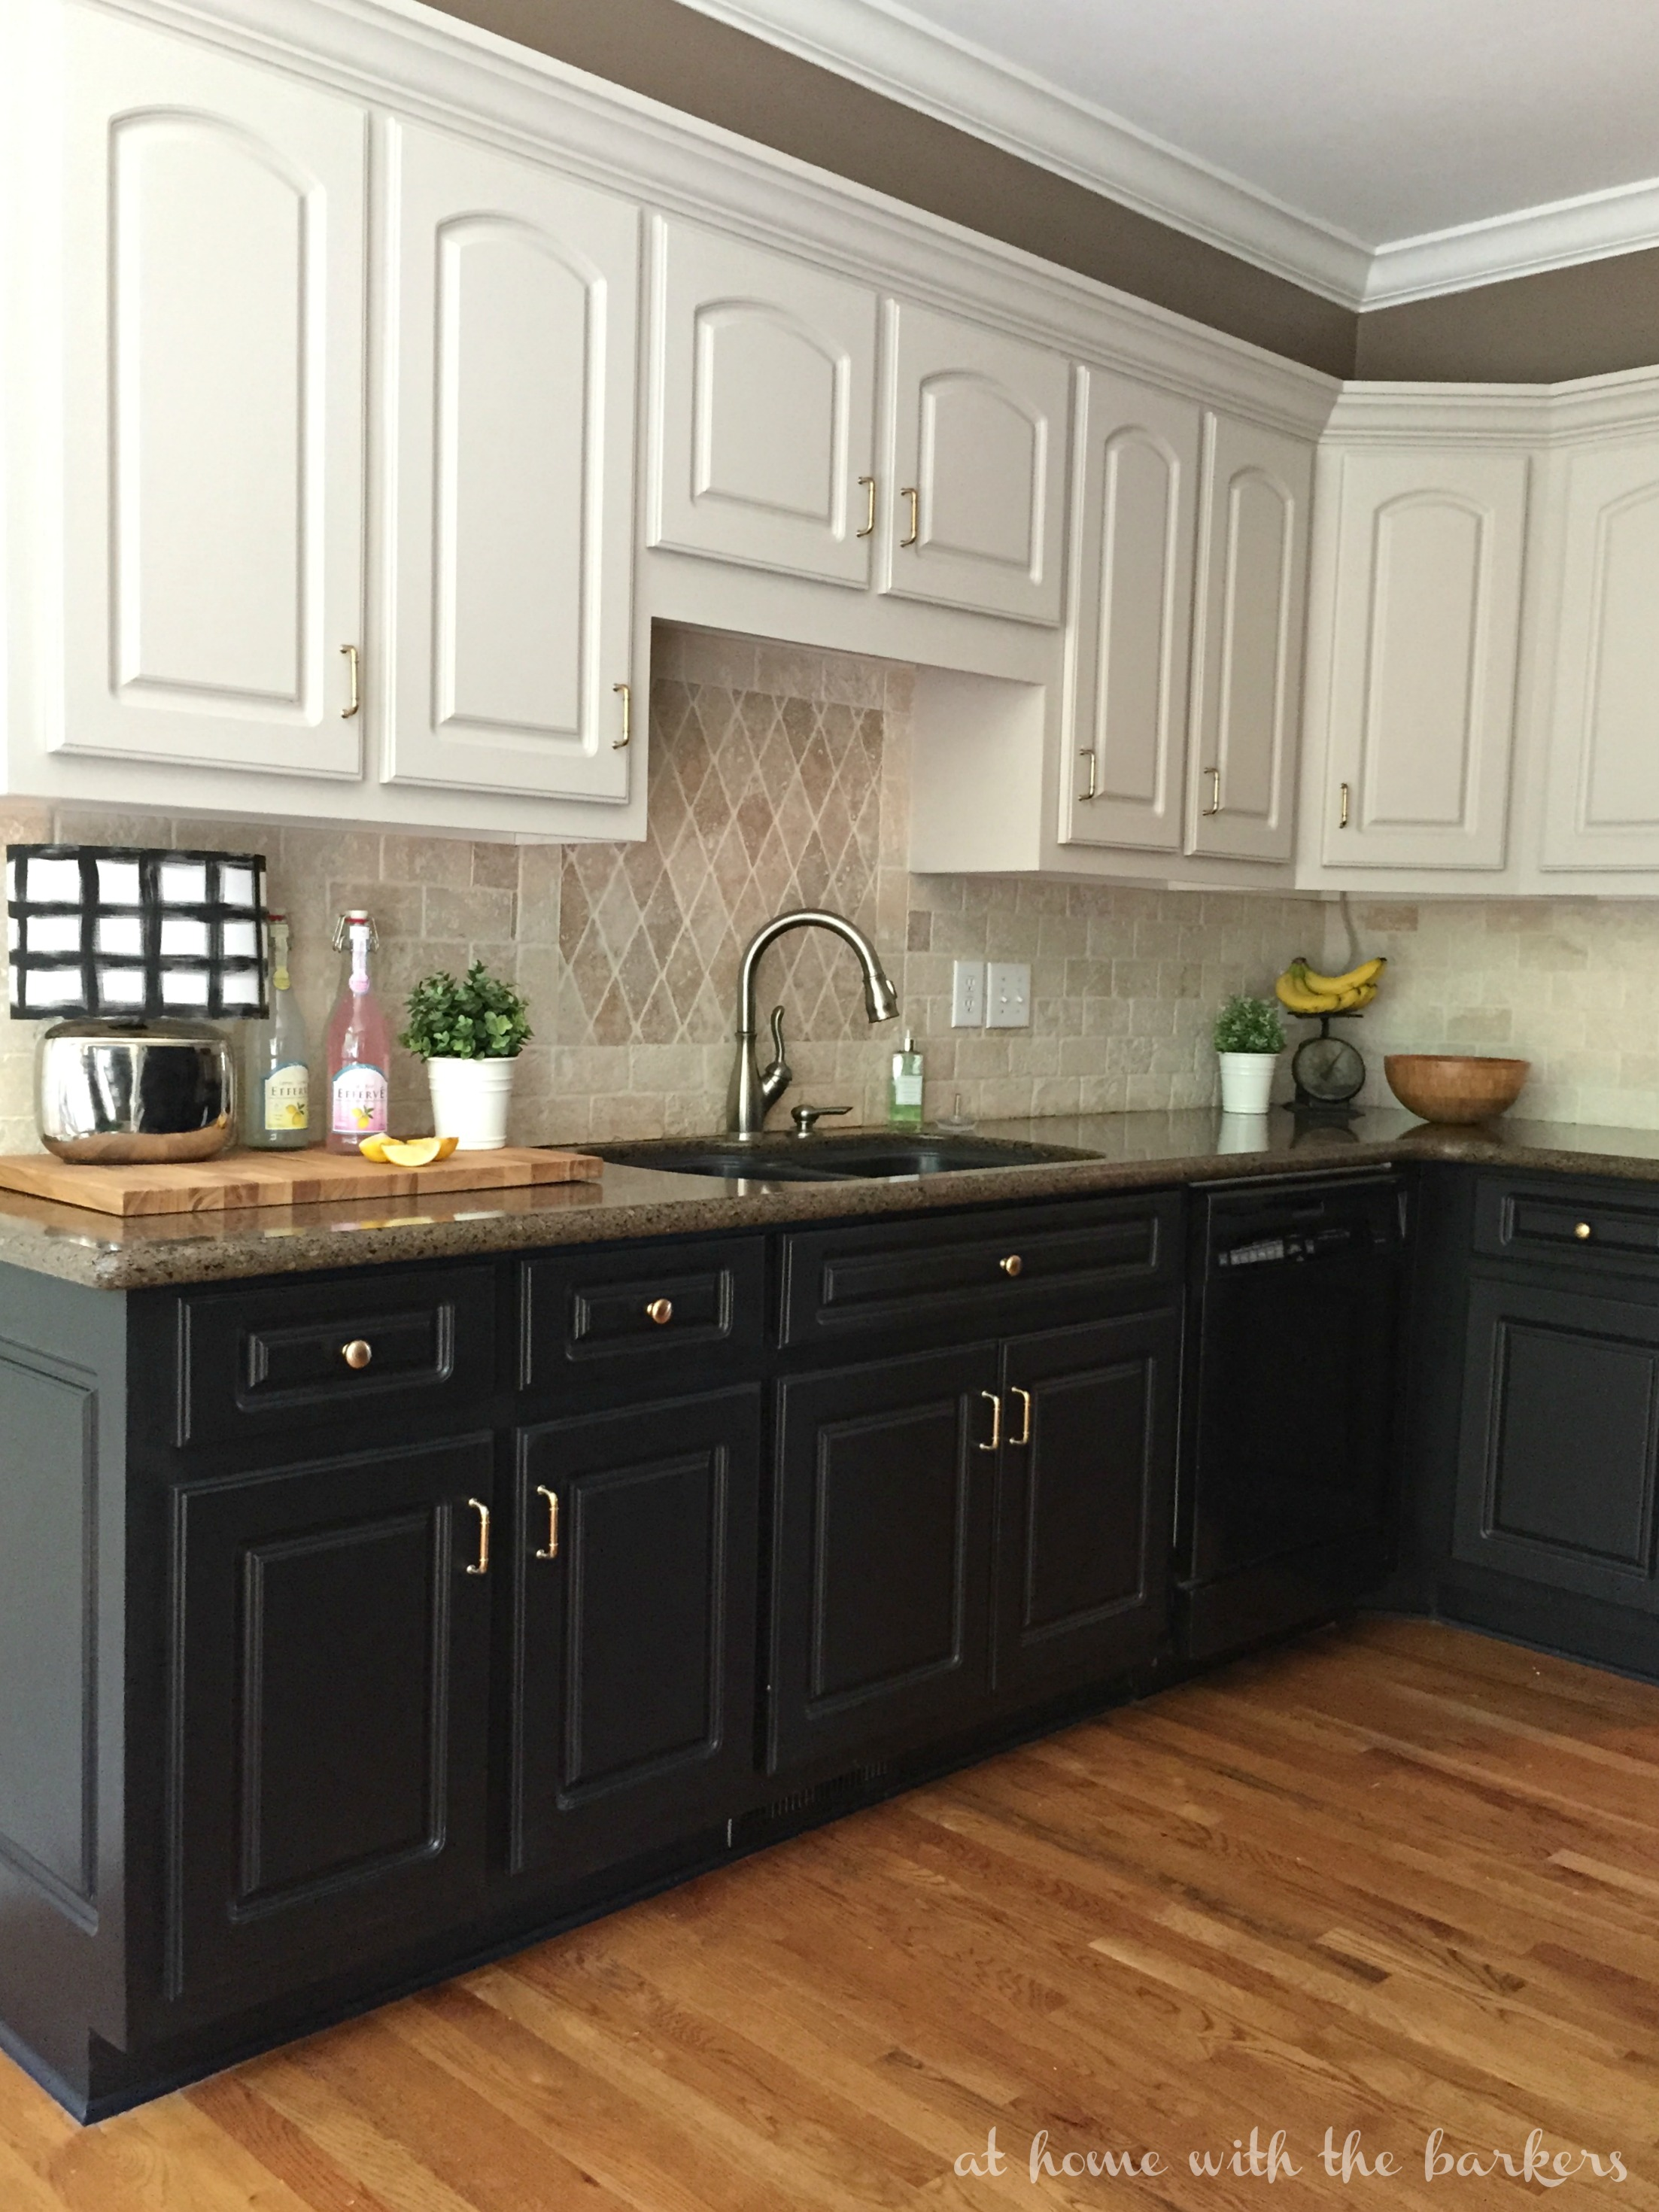 Black Kitchen Cabinets The Ugly Truth At Home With The: pictures of painted cabinets